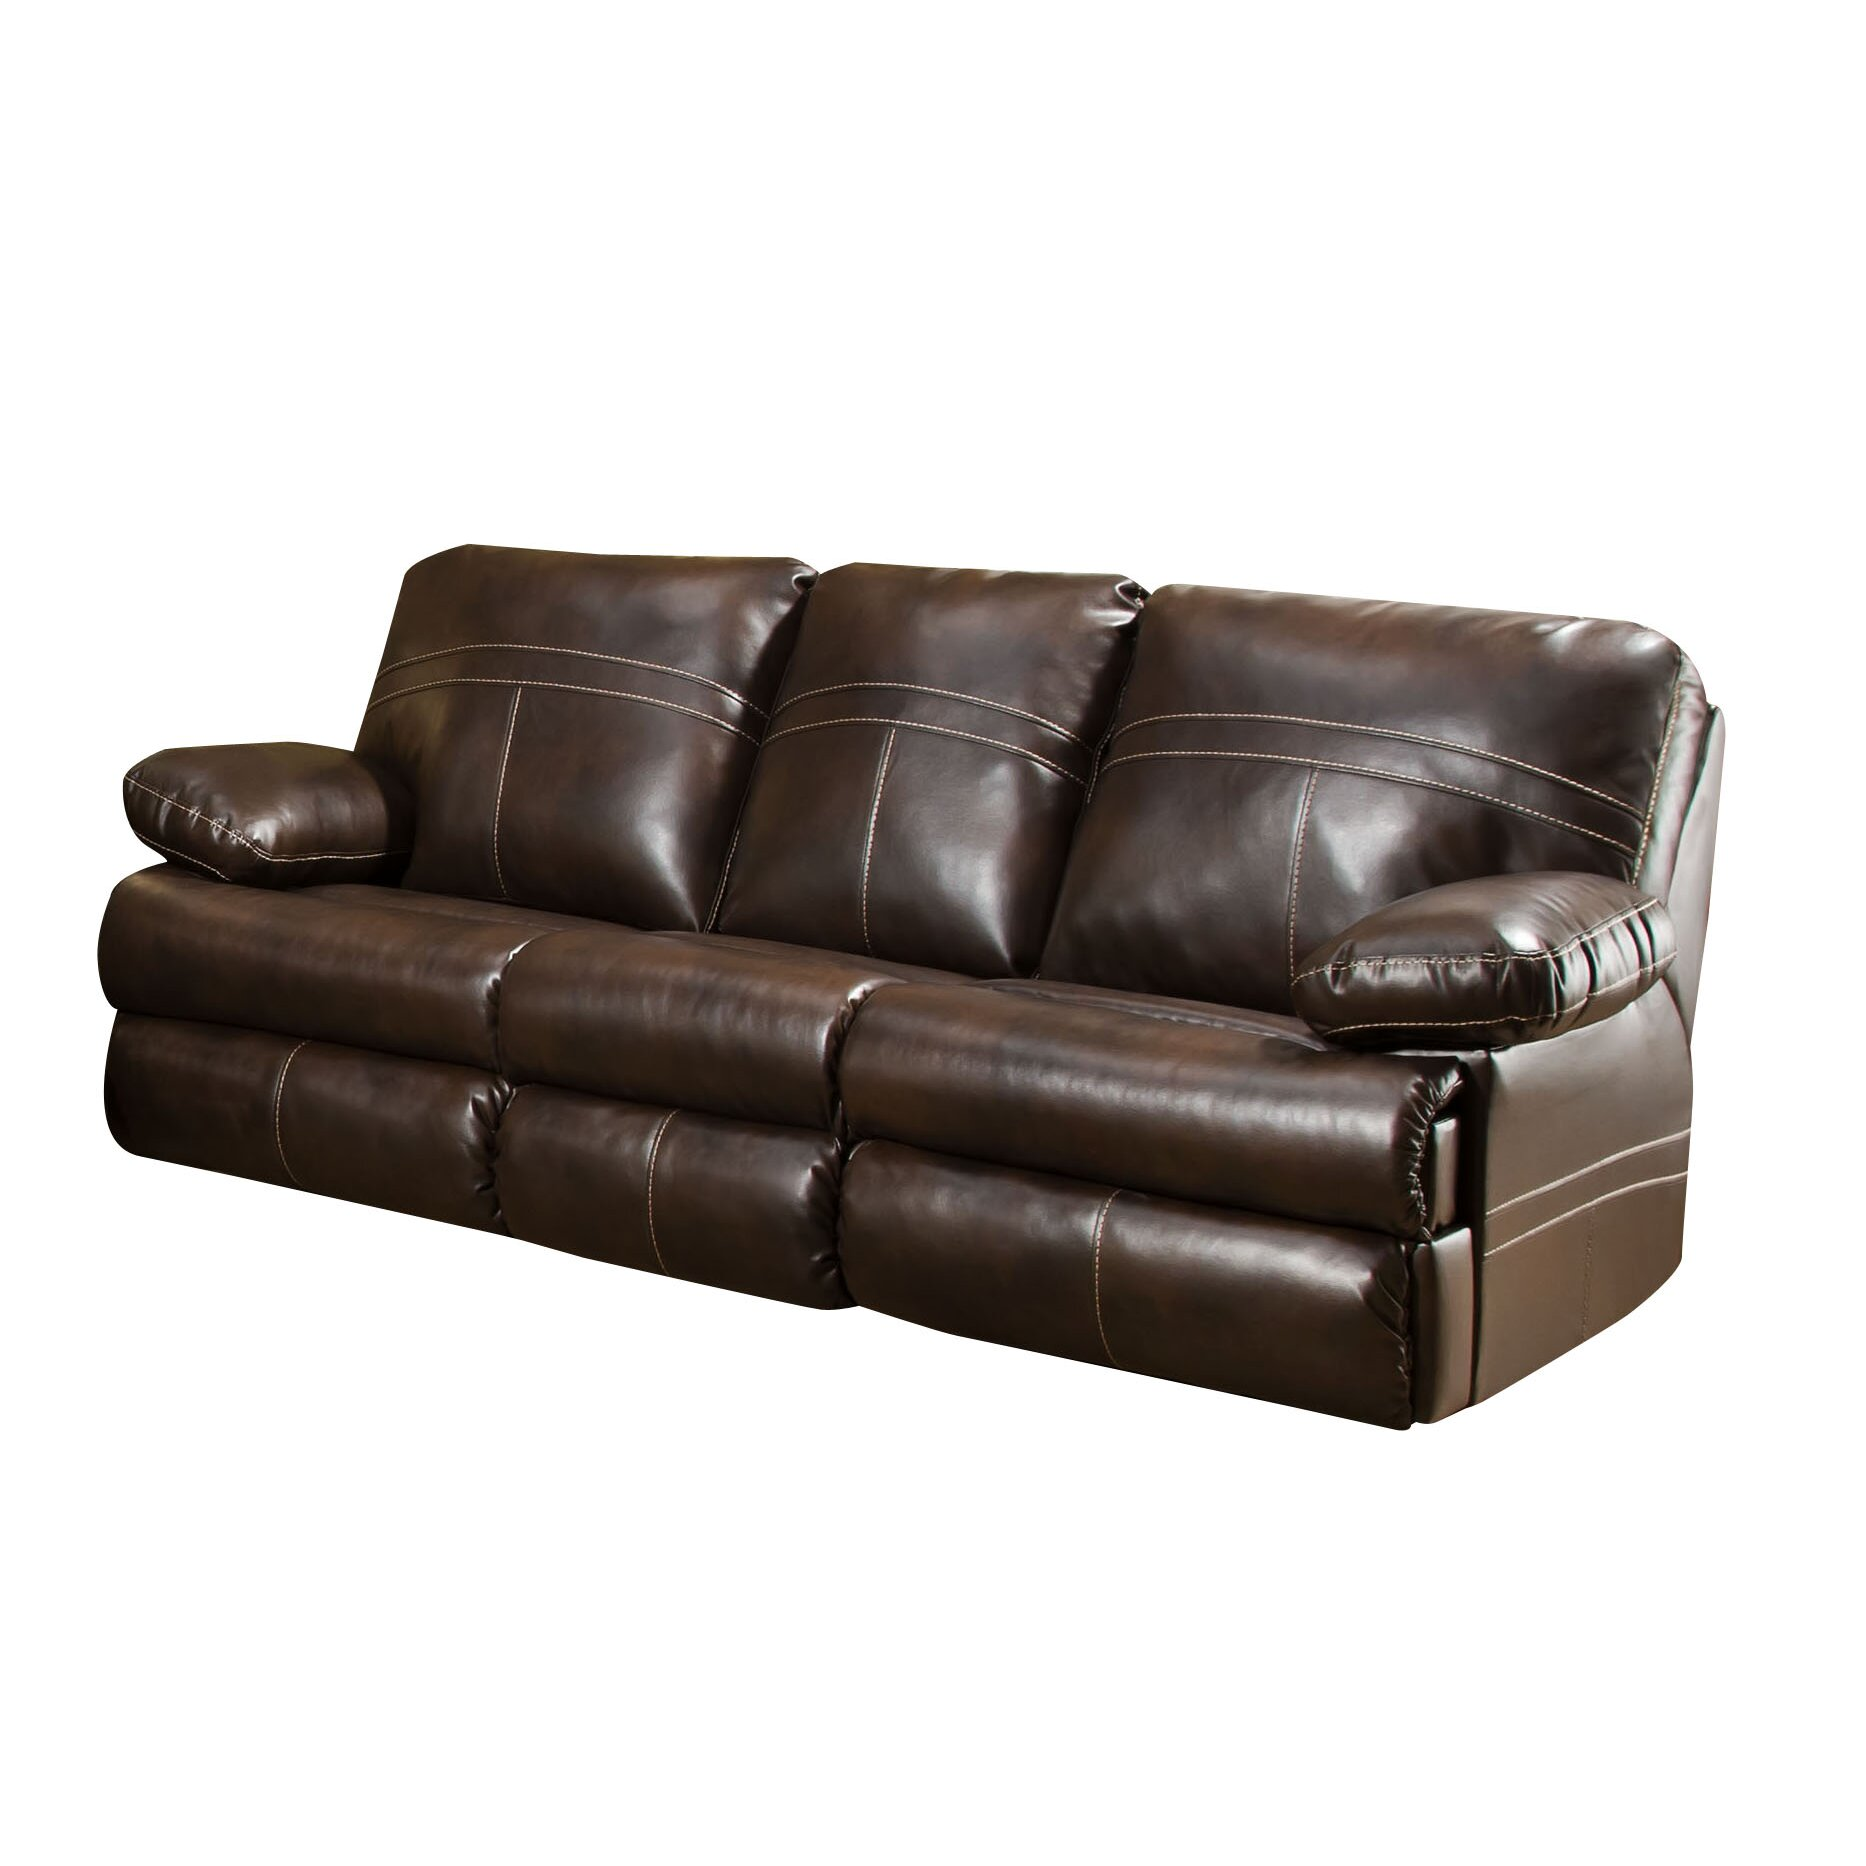 Living Room Furniture Leather And Upholstery Darby Home Co Simmons Upholstery Obryan Reclining Living Room